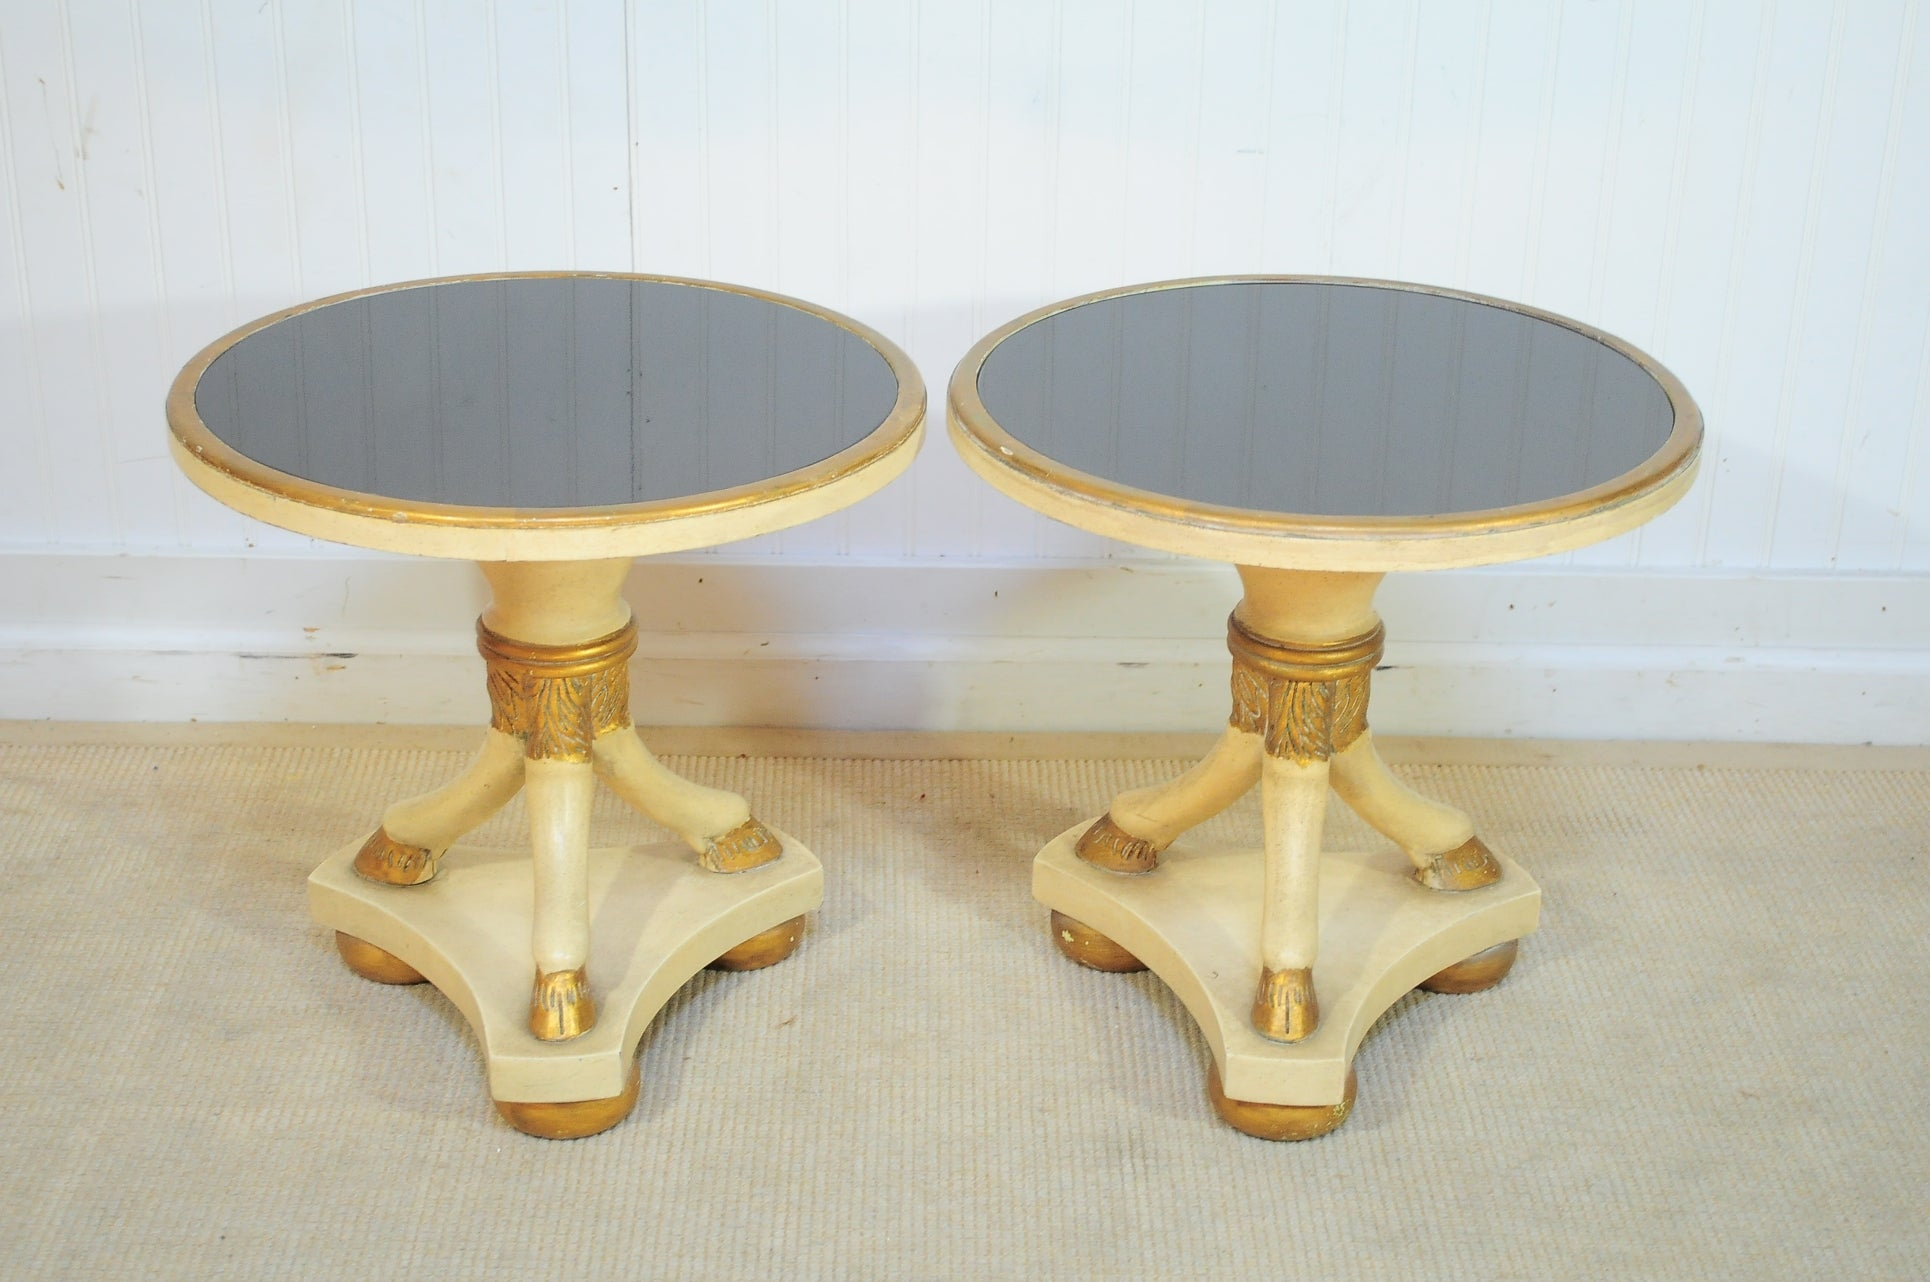 Pair French Regency Style Black Glass End Tables w Hoof Feet After Maison Jansen